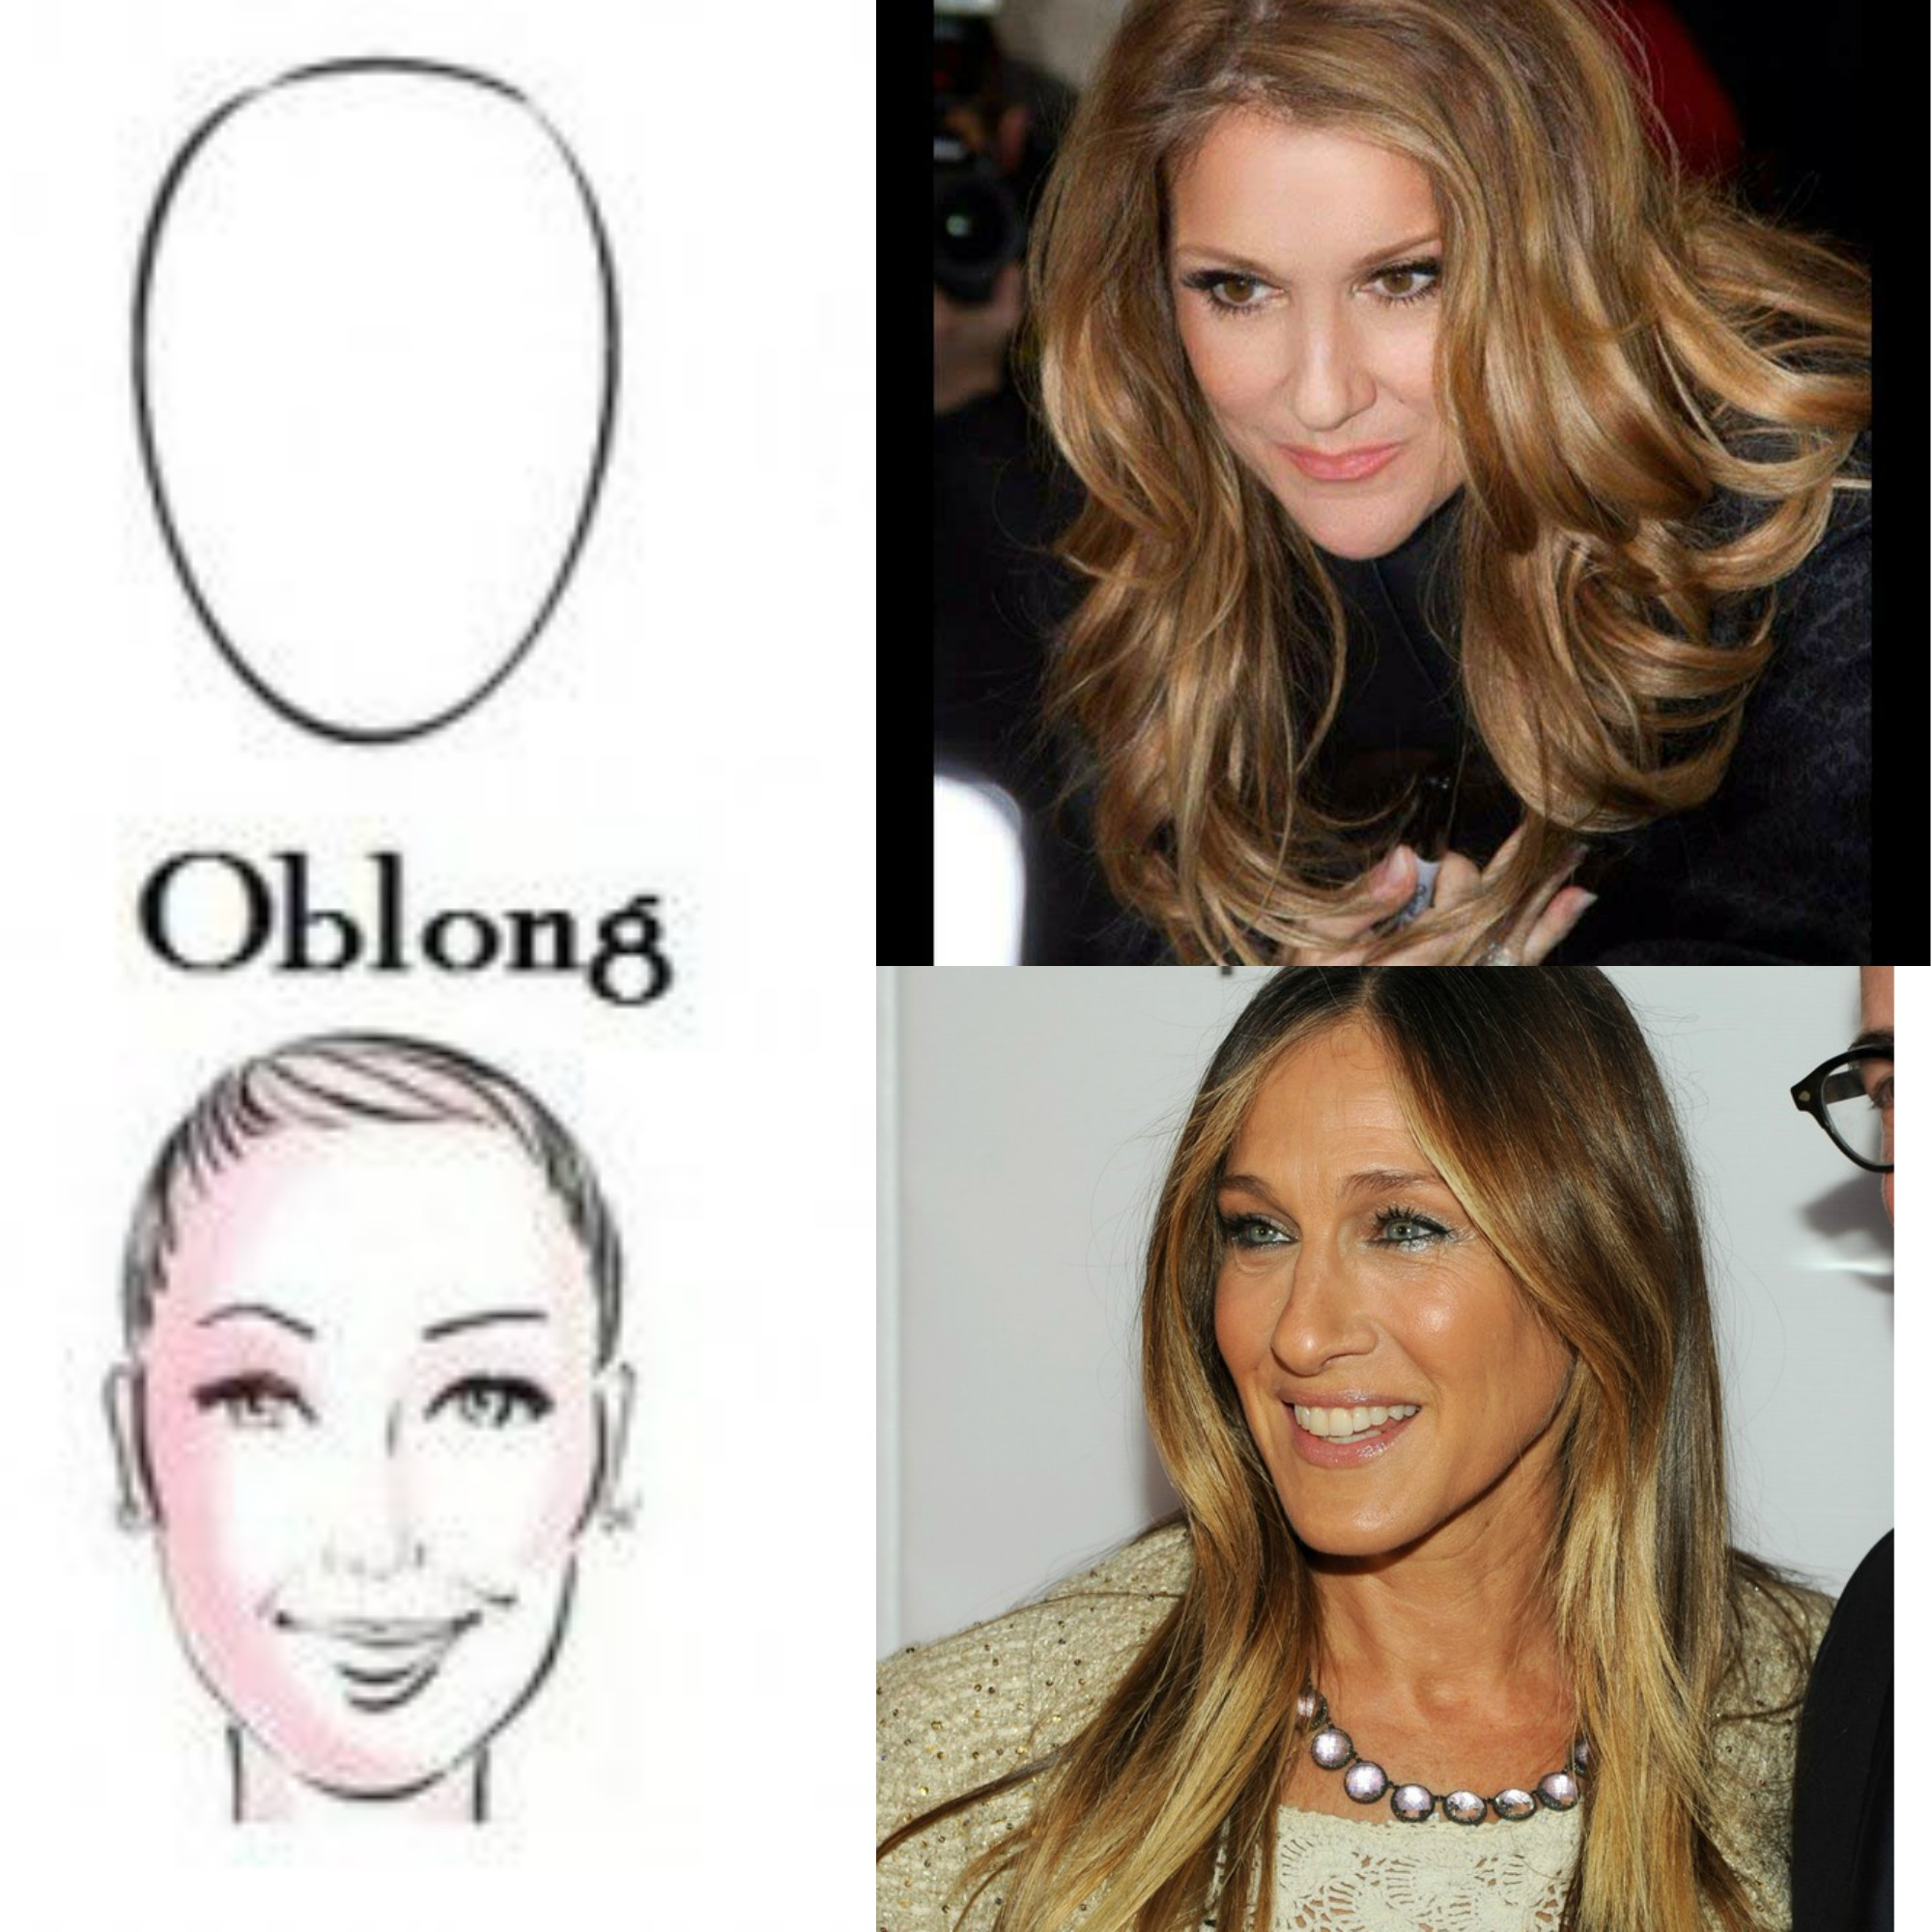 Le hair contouring la coloration pour sculpter son - Quelle coupe pour visage allonge femme ...